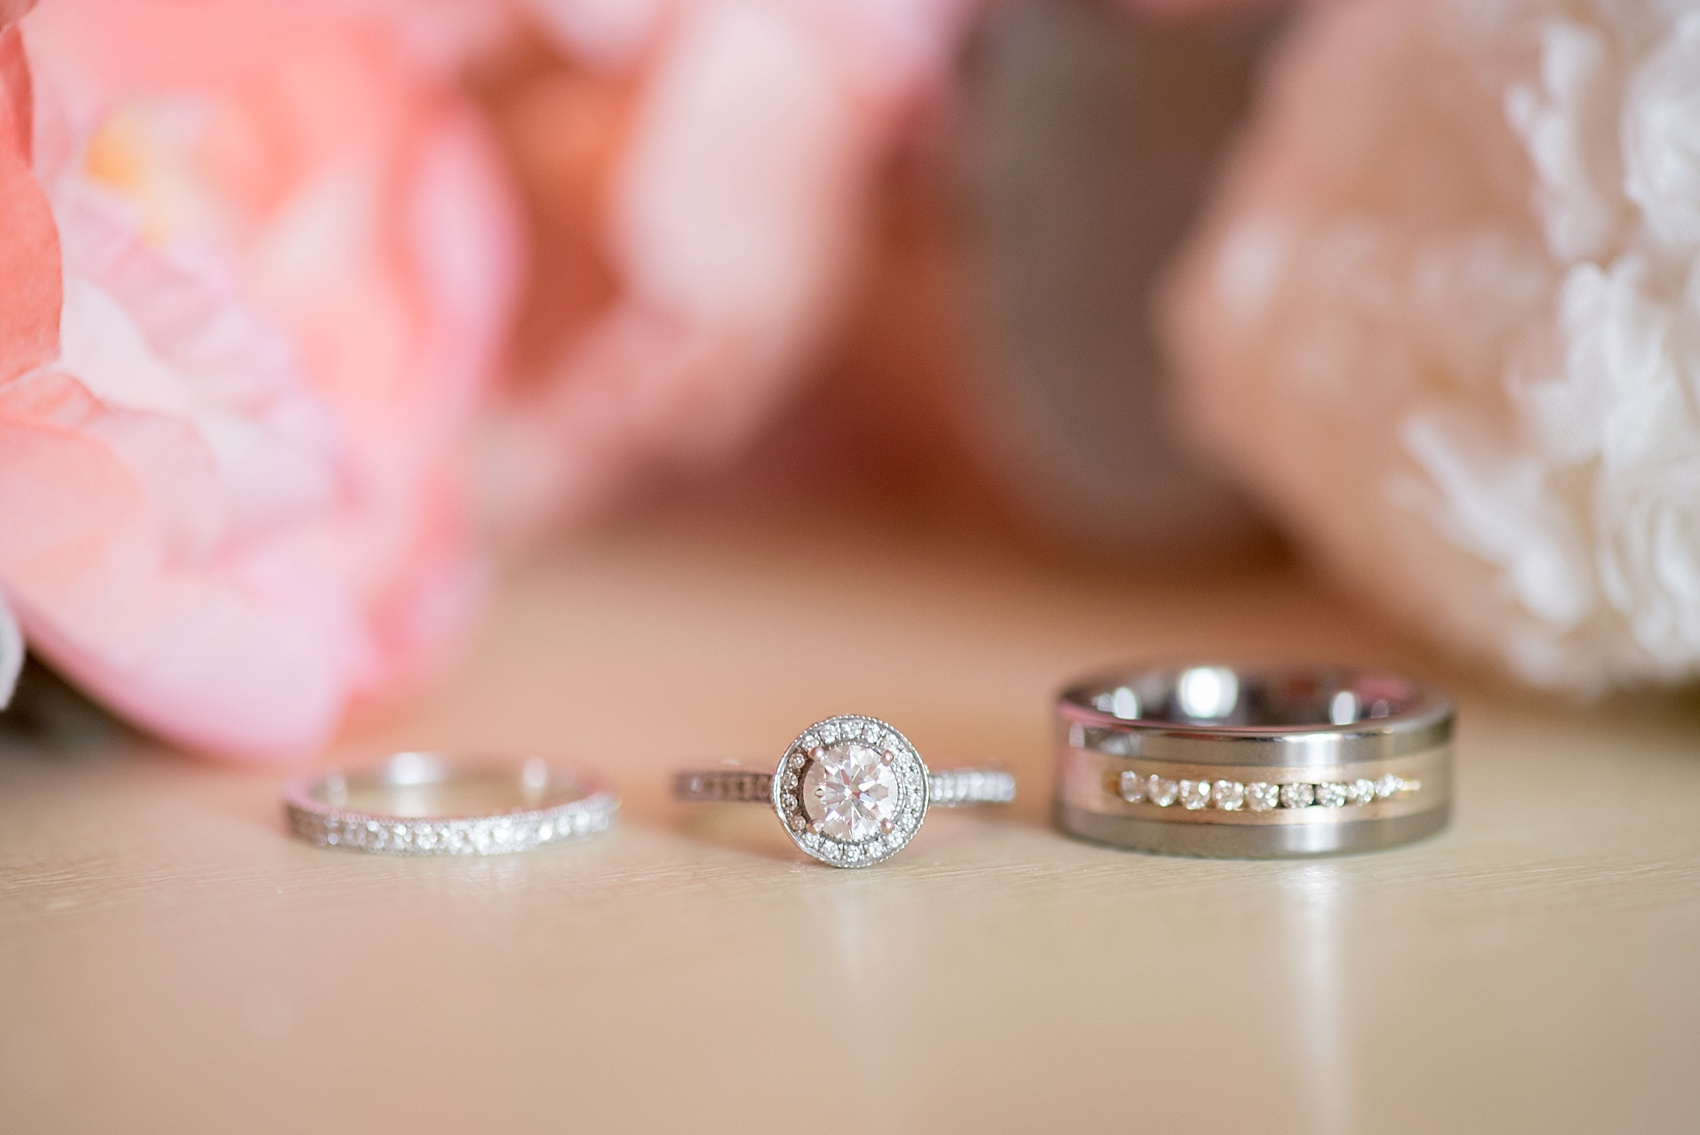 Iberostar Jamaica wedding photos, wedding rings. Images by Mikkel Paige Photography.